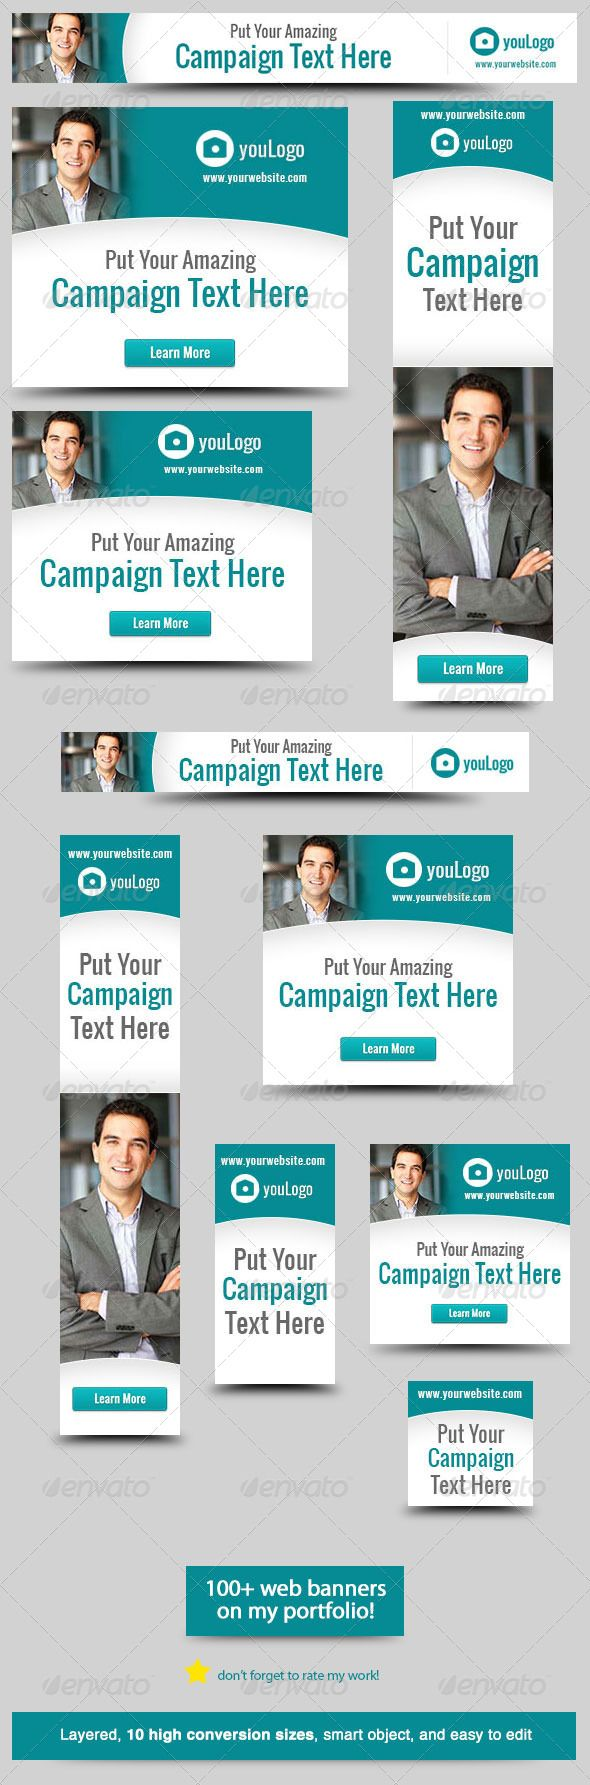 Corporate Web Banner Design Template 28 | Web banner design